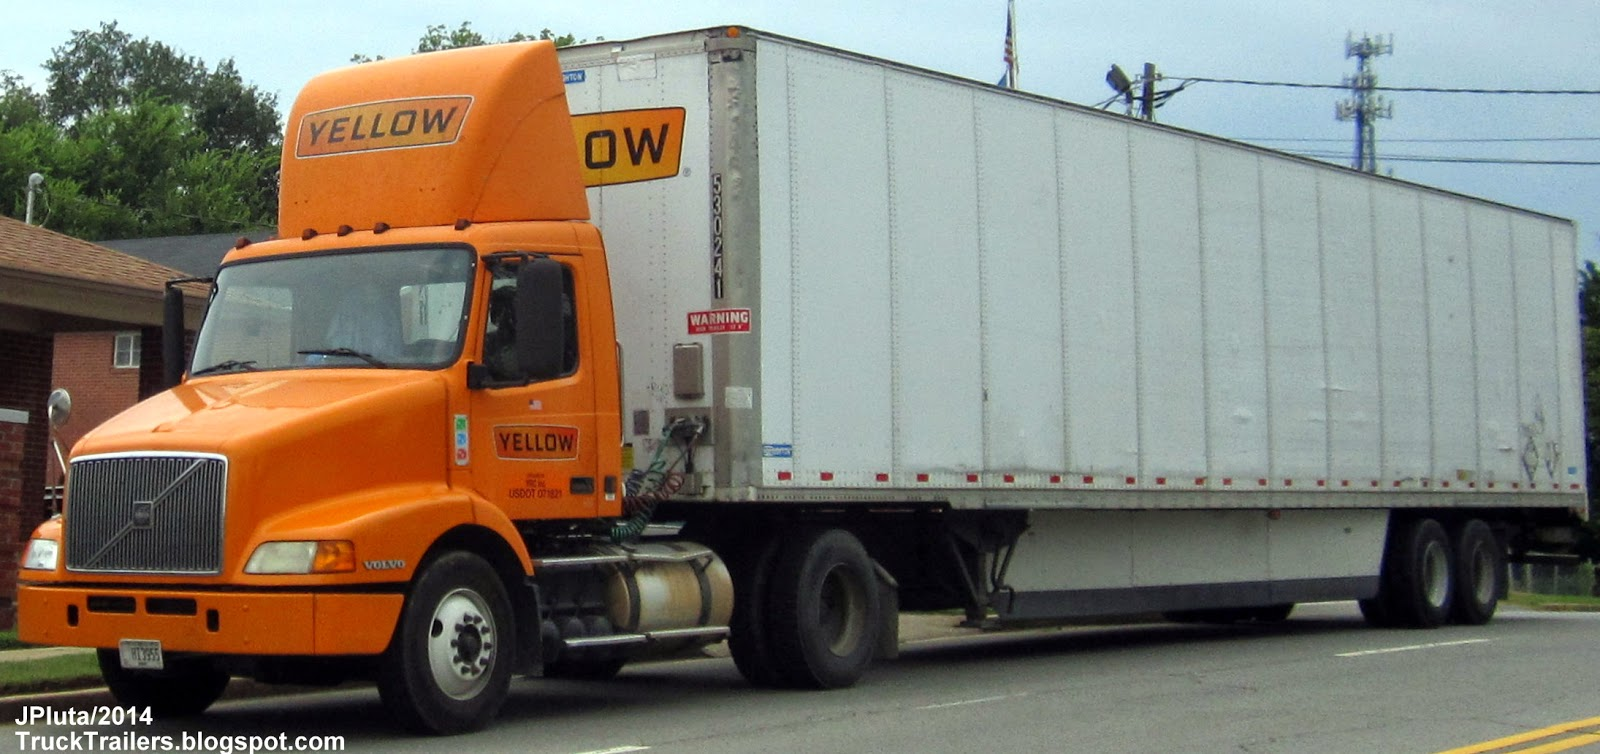 yellow roadway corporation freight merger About yrc worldwide yrc worldwide inc, headquartered in overland park, kan, is the holding company for a portfolio of less-than-truckload (ltl) companies including yrc freight , yrc reimer , holland , reddaway , and new penn .